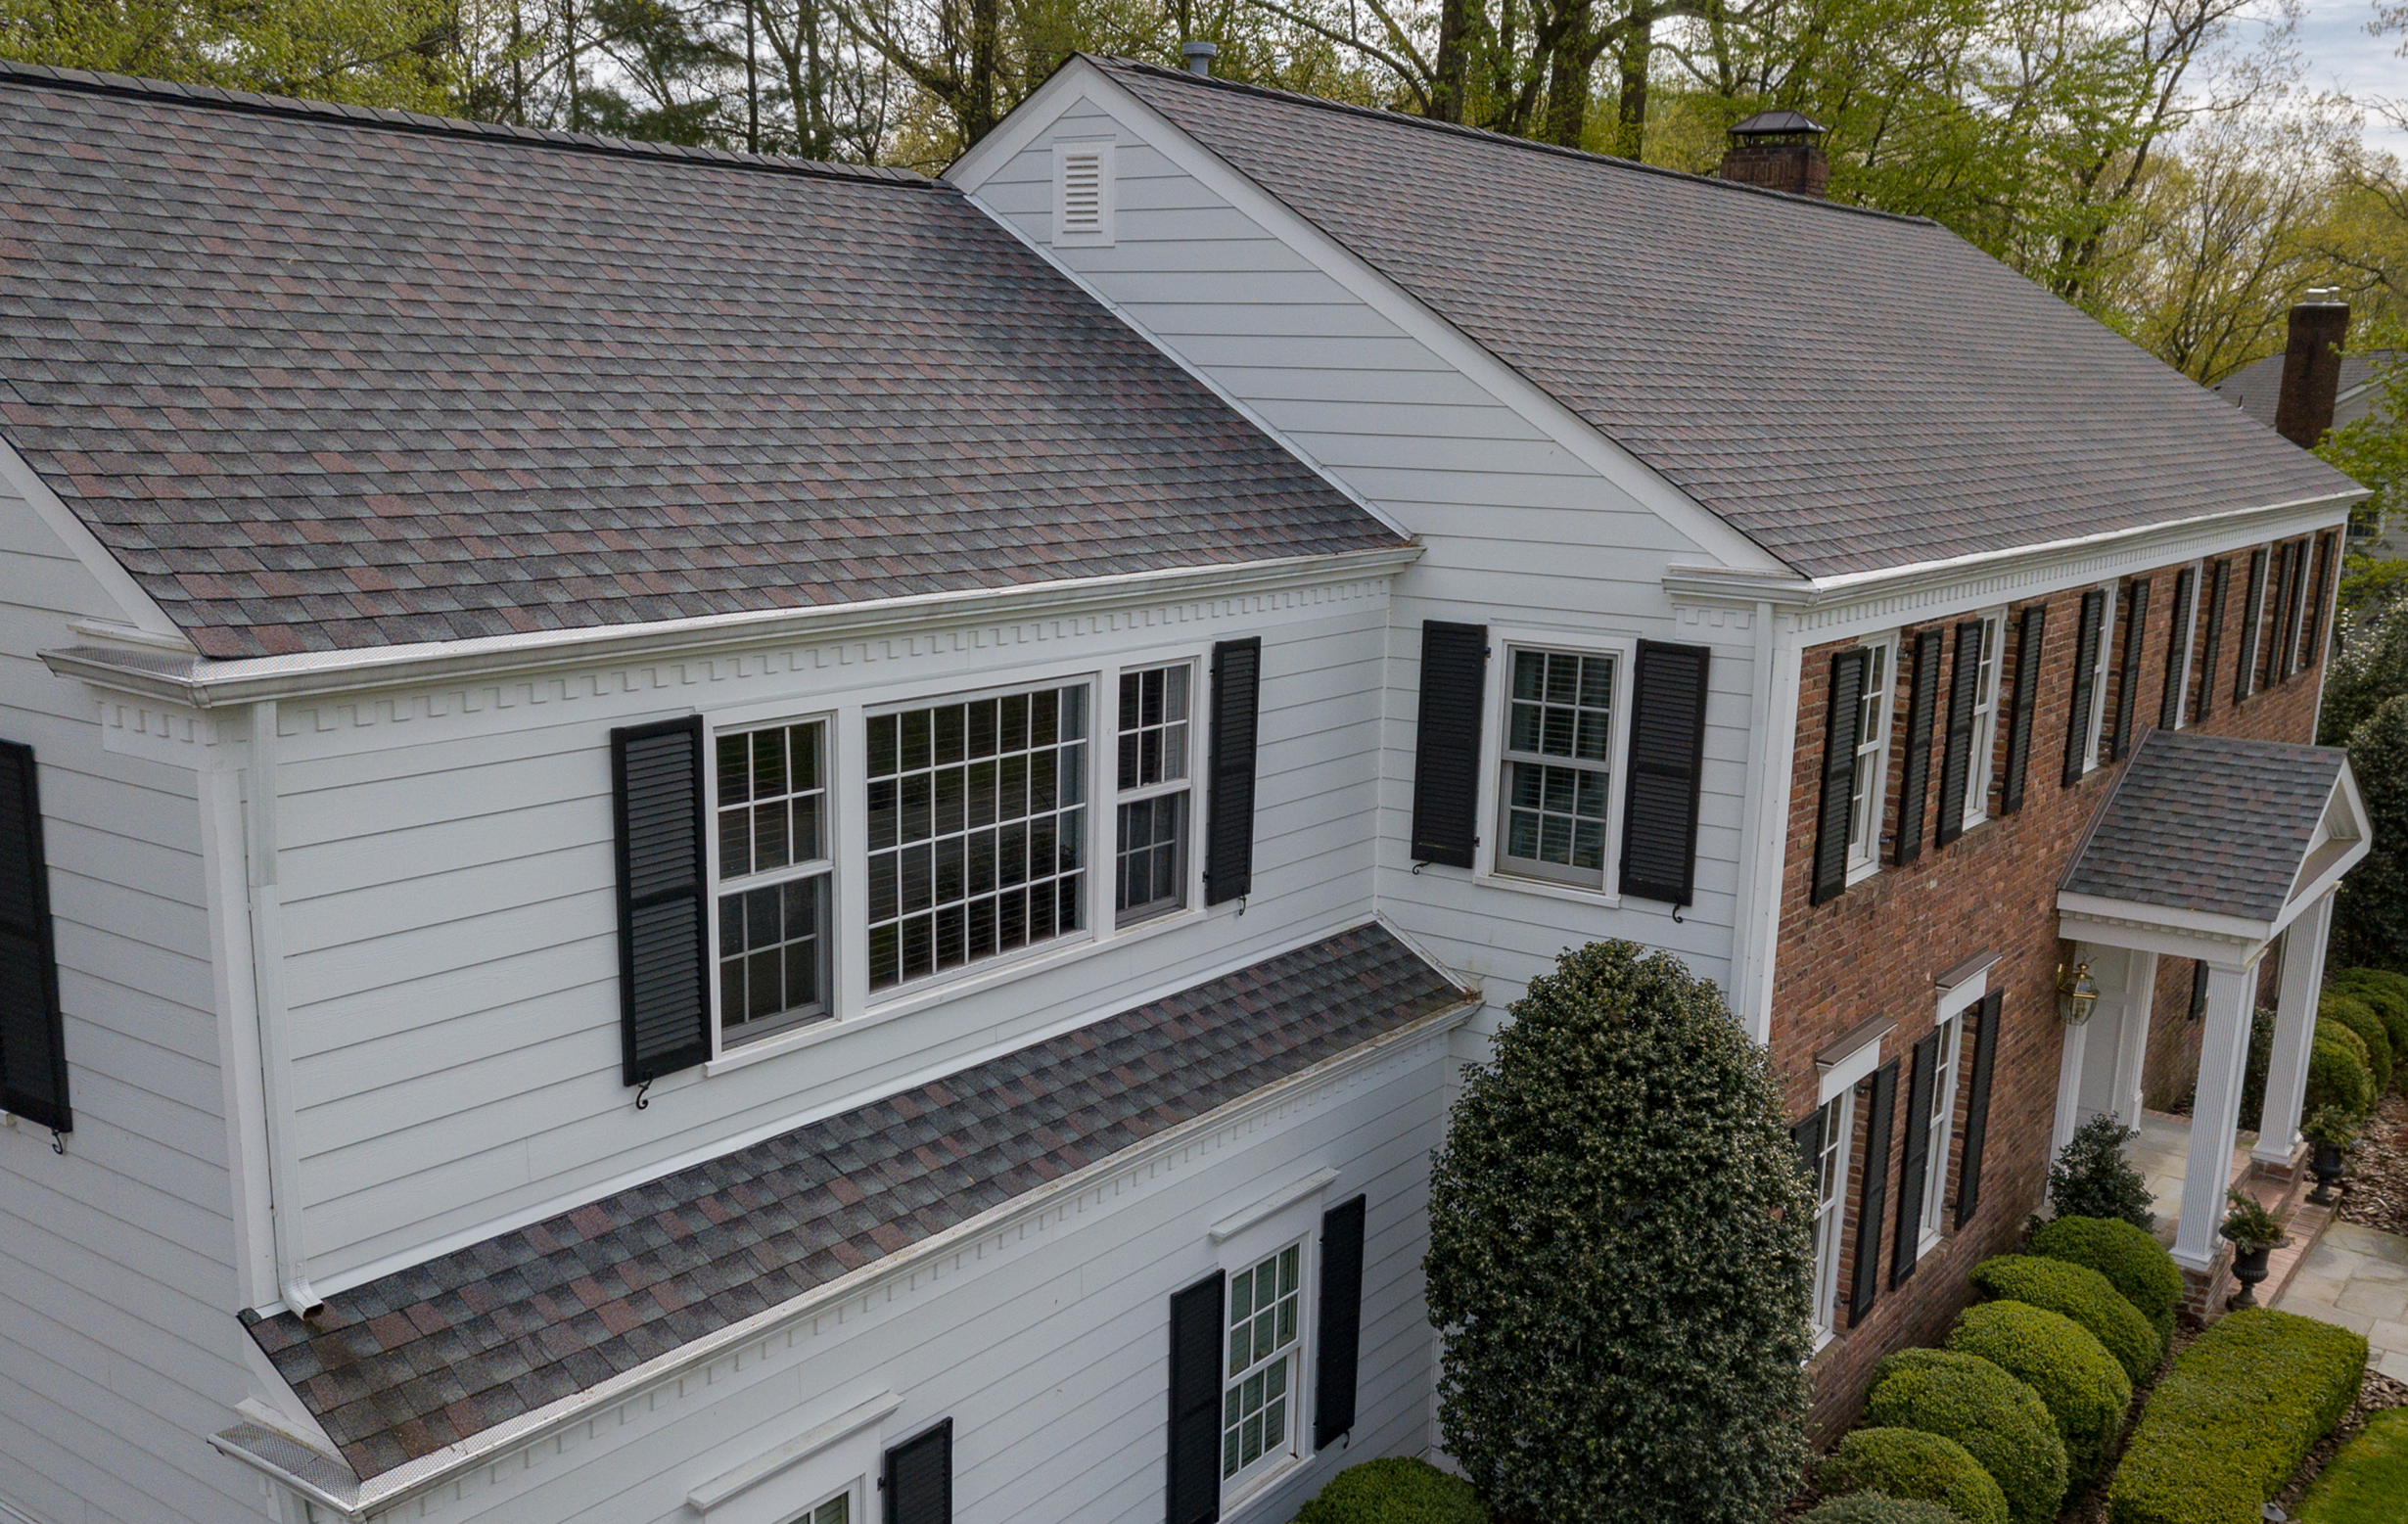 Chatham-Roof-Replacement-Roofing-Installation-GAF-Davinci.jpg